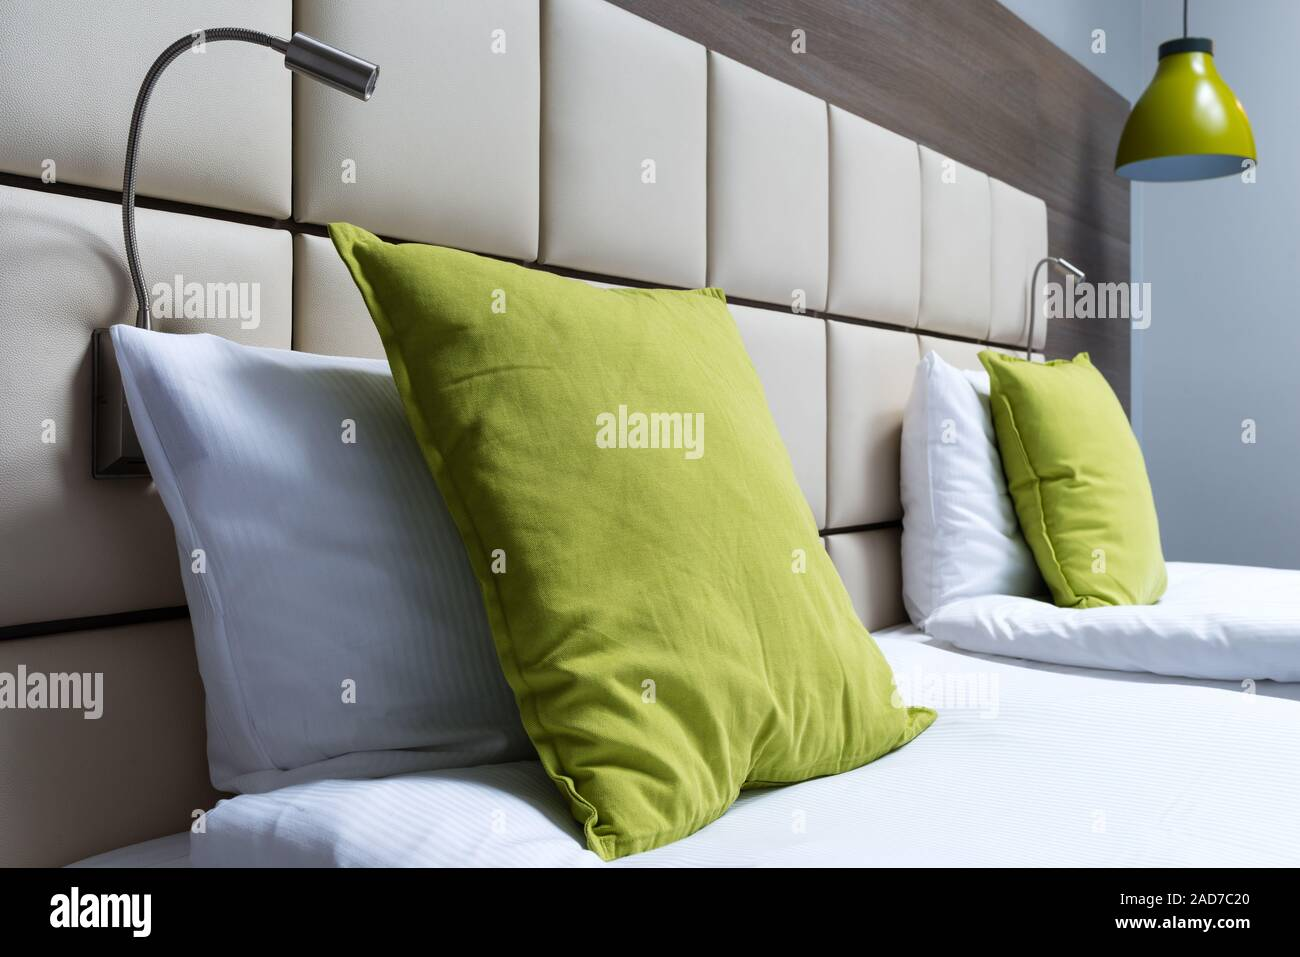 Green Pillow Reading Lamps And Leather Bed Headboard In Modern Bedroom Stock Photo Alamy